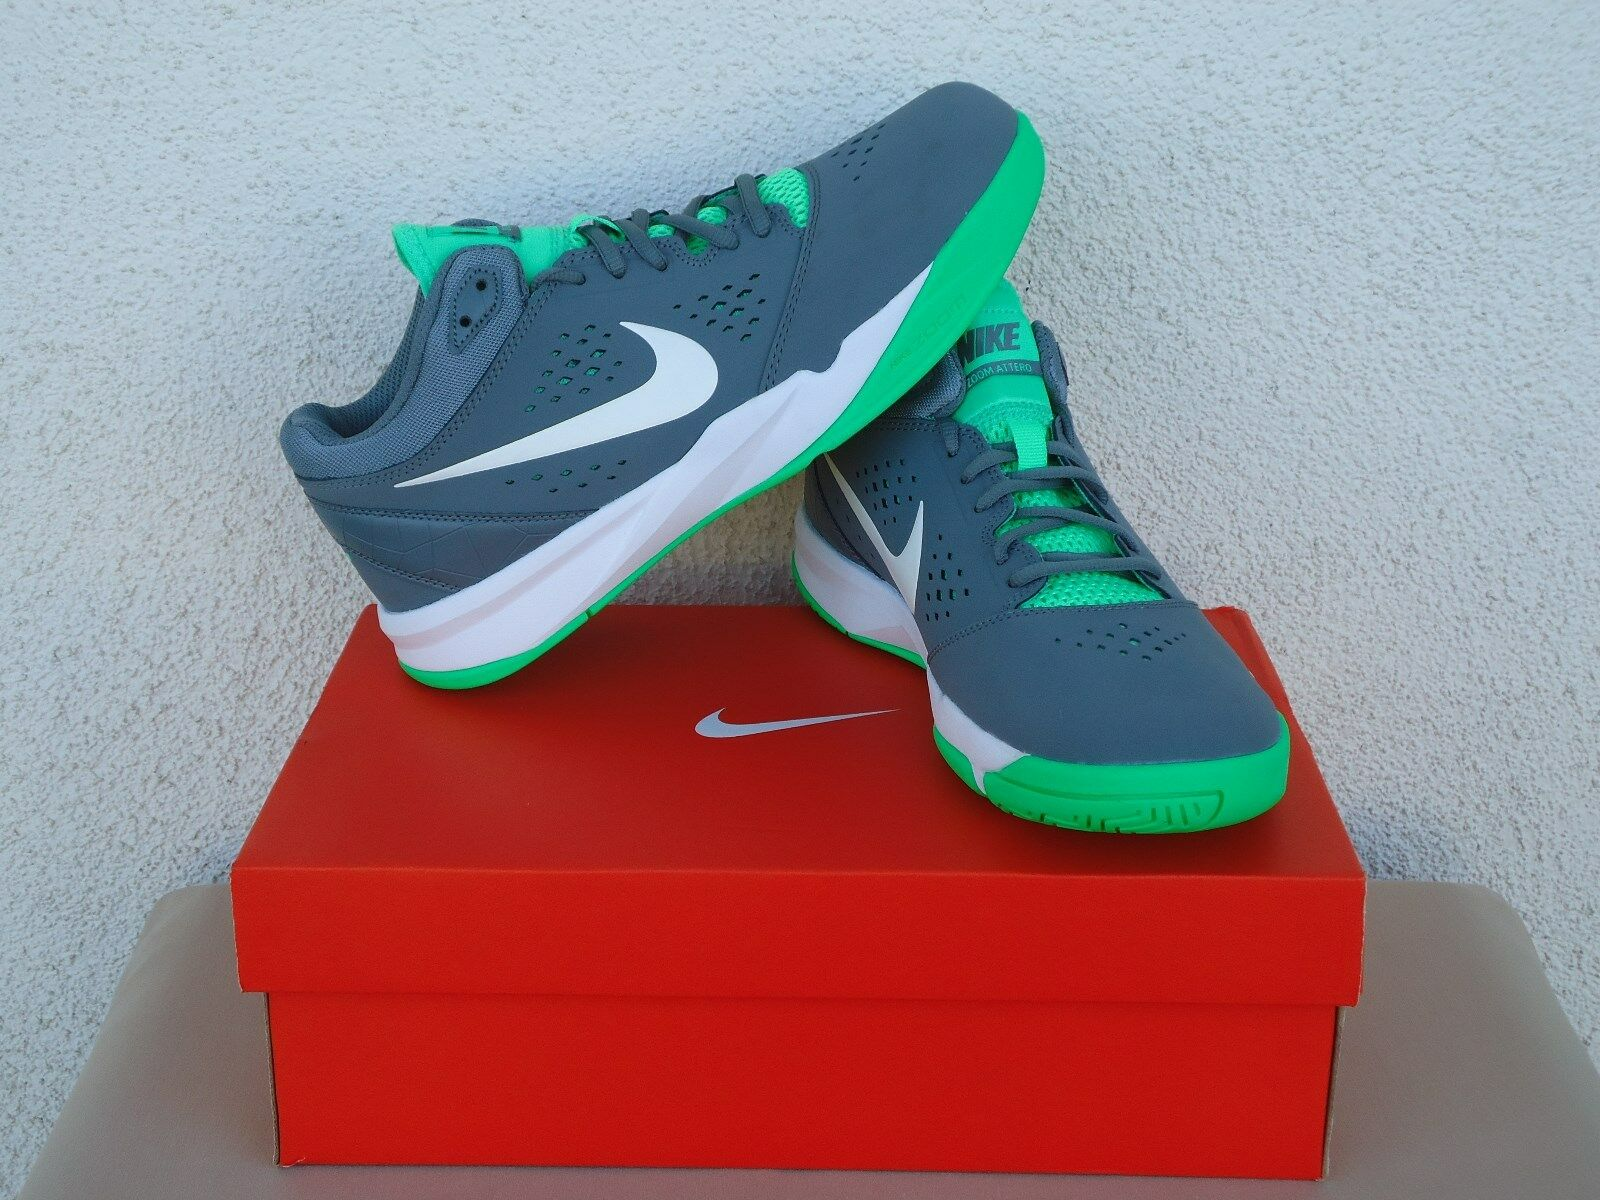 finest selection 4dc00 12f62 ... Nike Men s Sneakers Shoes Zoom Zoom Zoom Attero NBK US 8,8.5,9 Grey ...